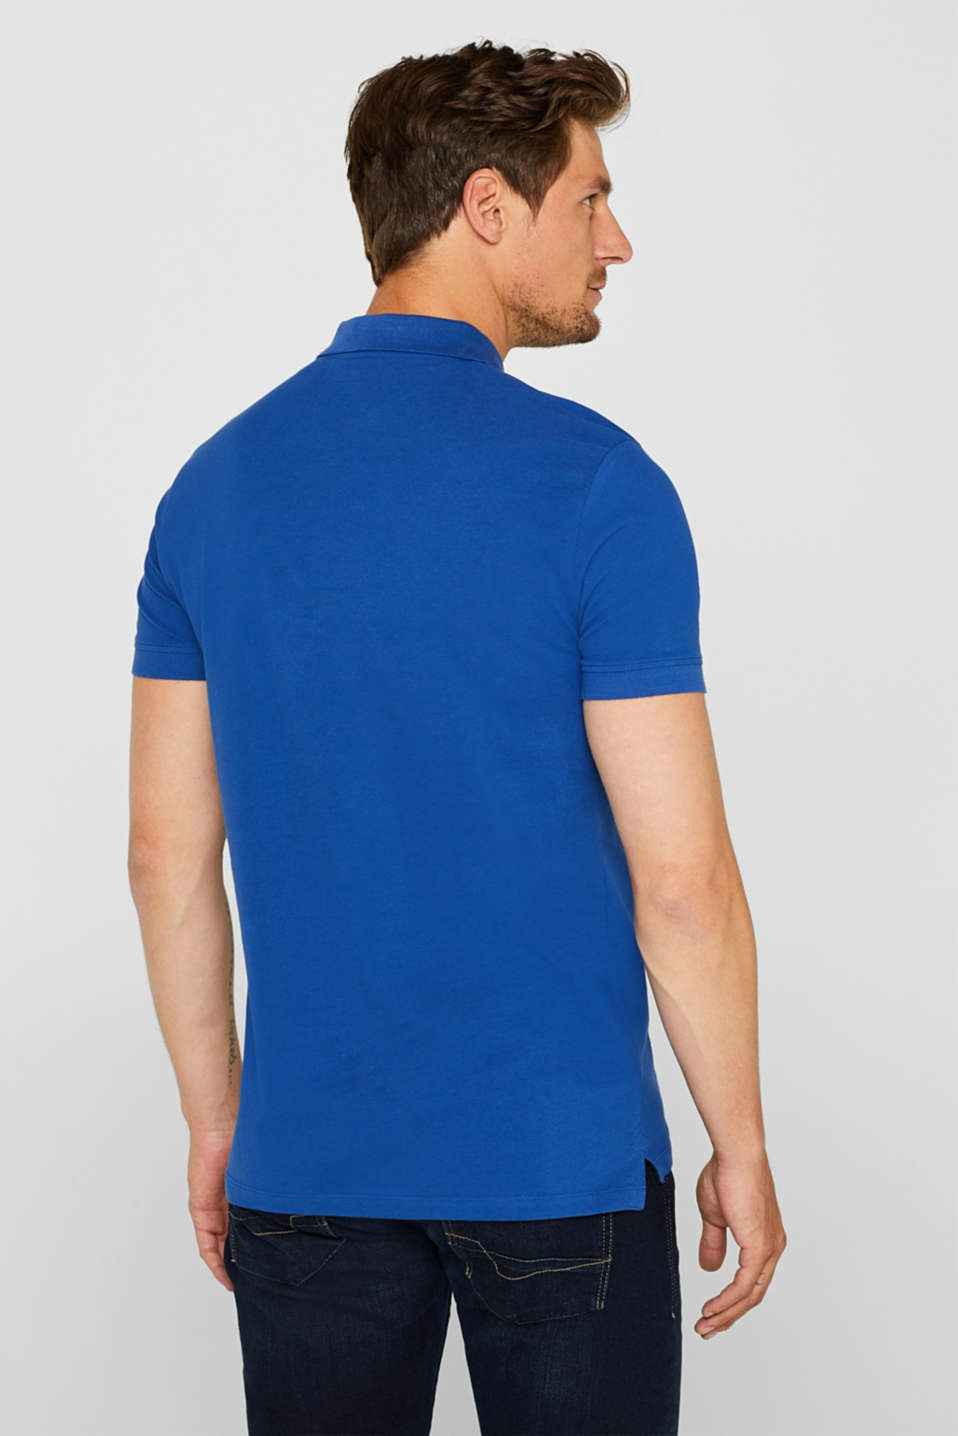 Piqué polo shirt in 100% cotton, BRIGHT BLUE, detail image number 3